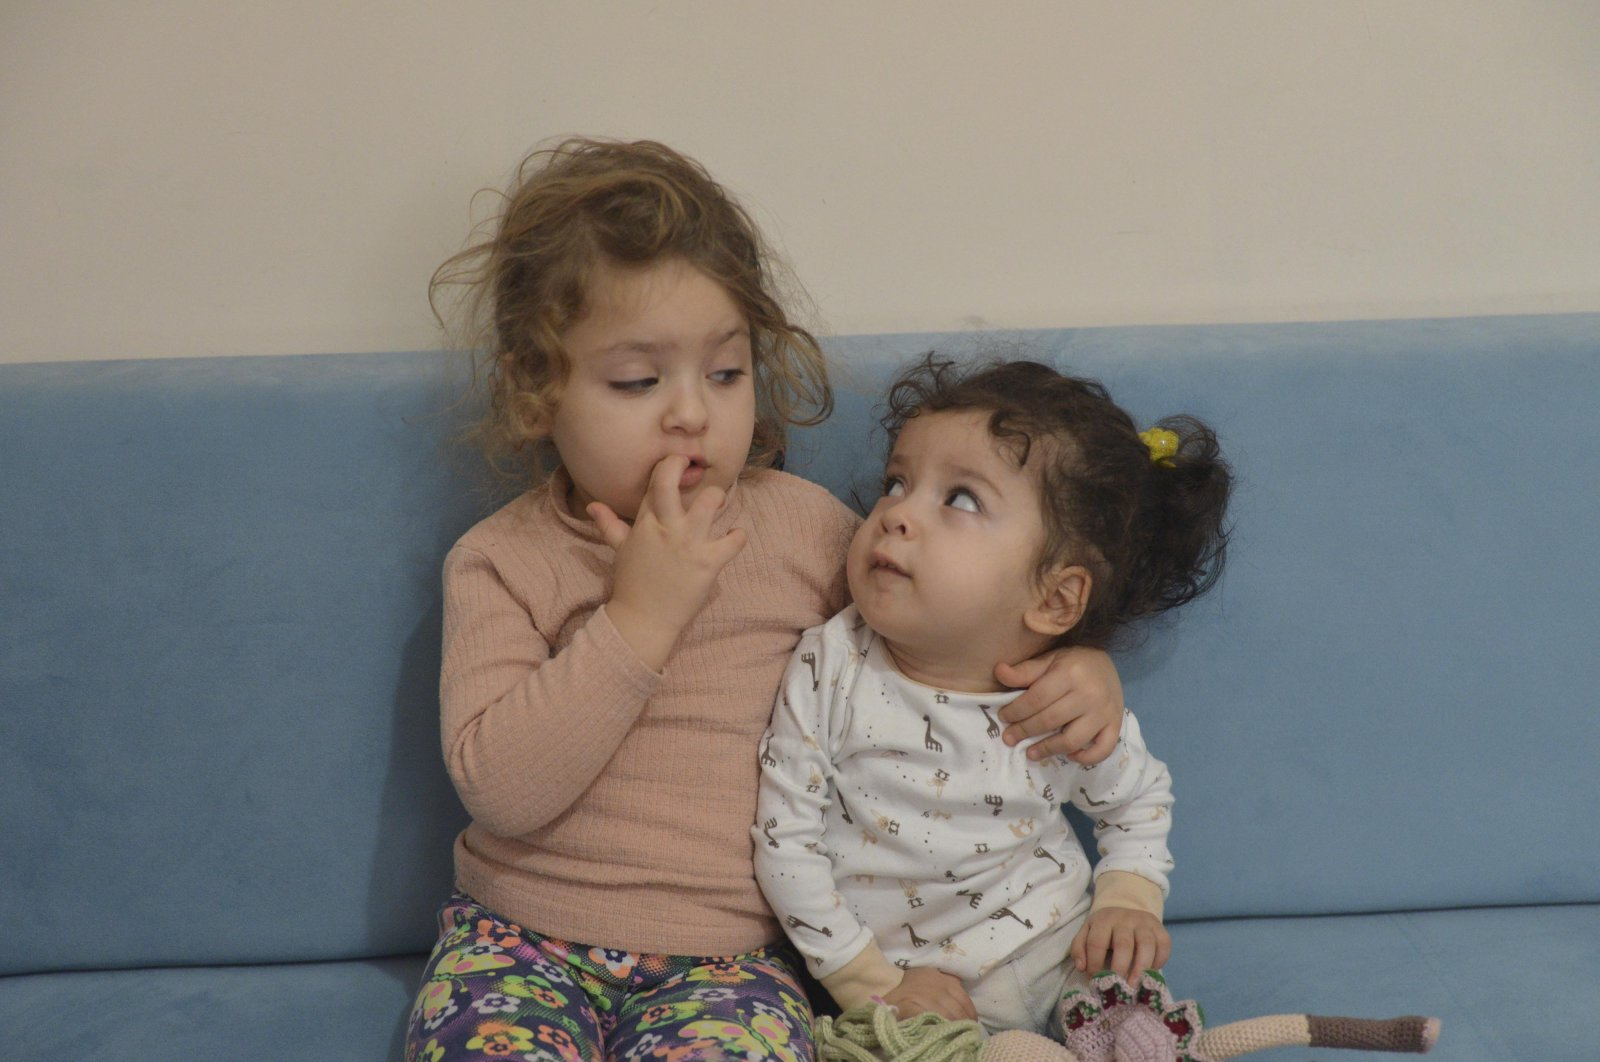 Zehra Elmalıca (L) sits next to her two-year-old sister Öykü, a spinal muscular atrophy (SMA) patient, in the capital Ankara, Turkey, Dec. 11, 2020. (DHA PHOTO)